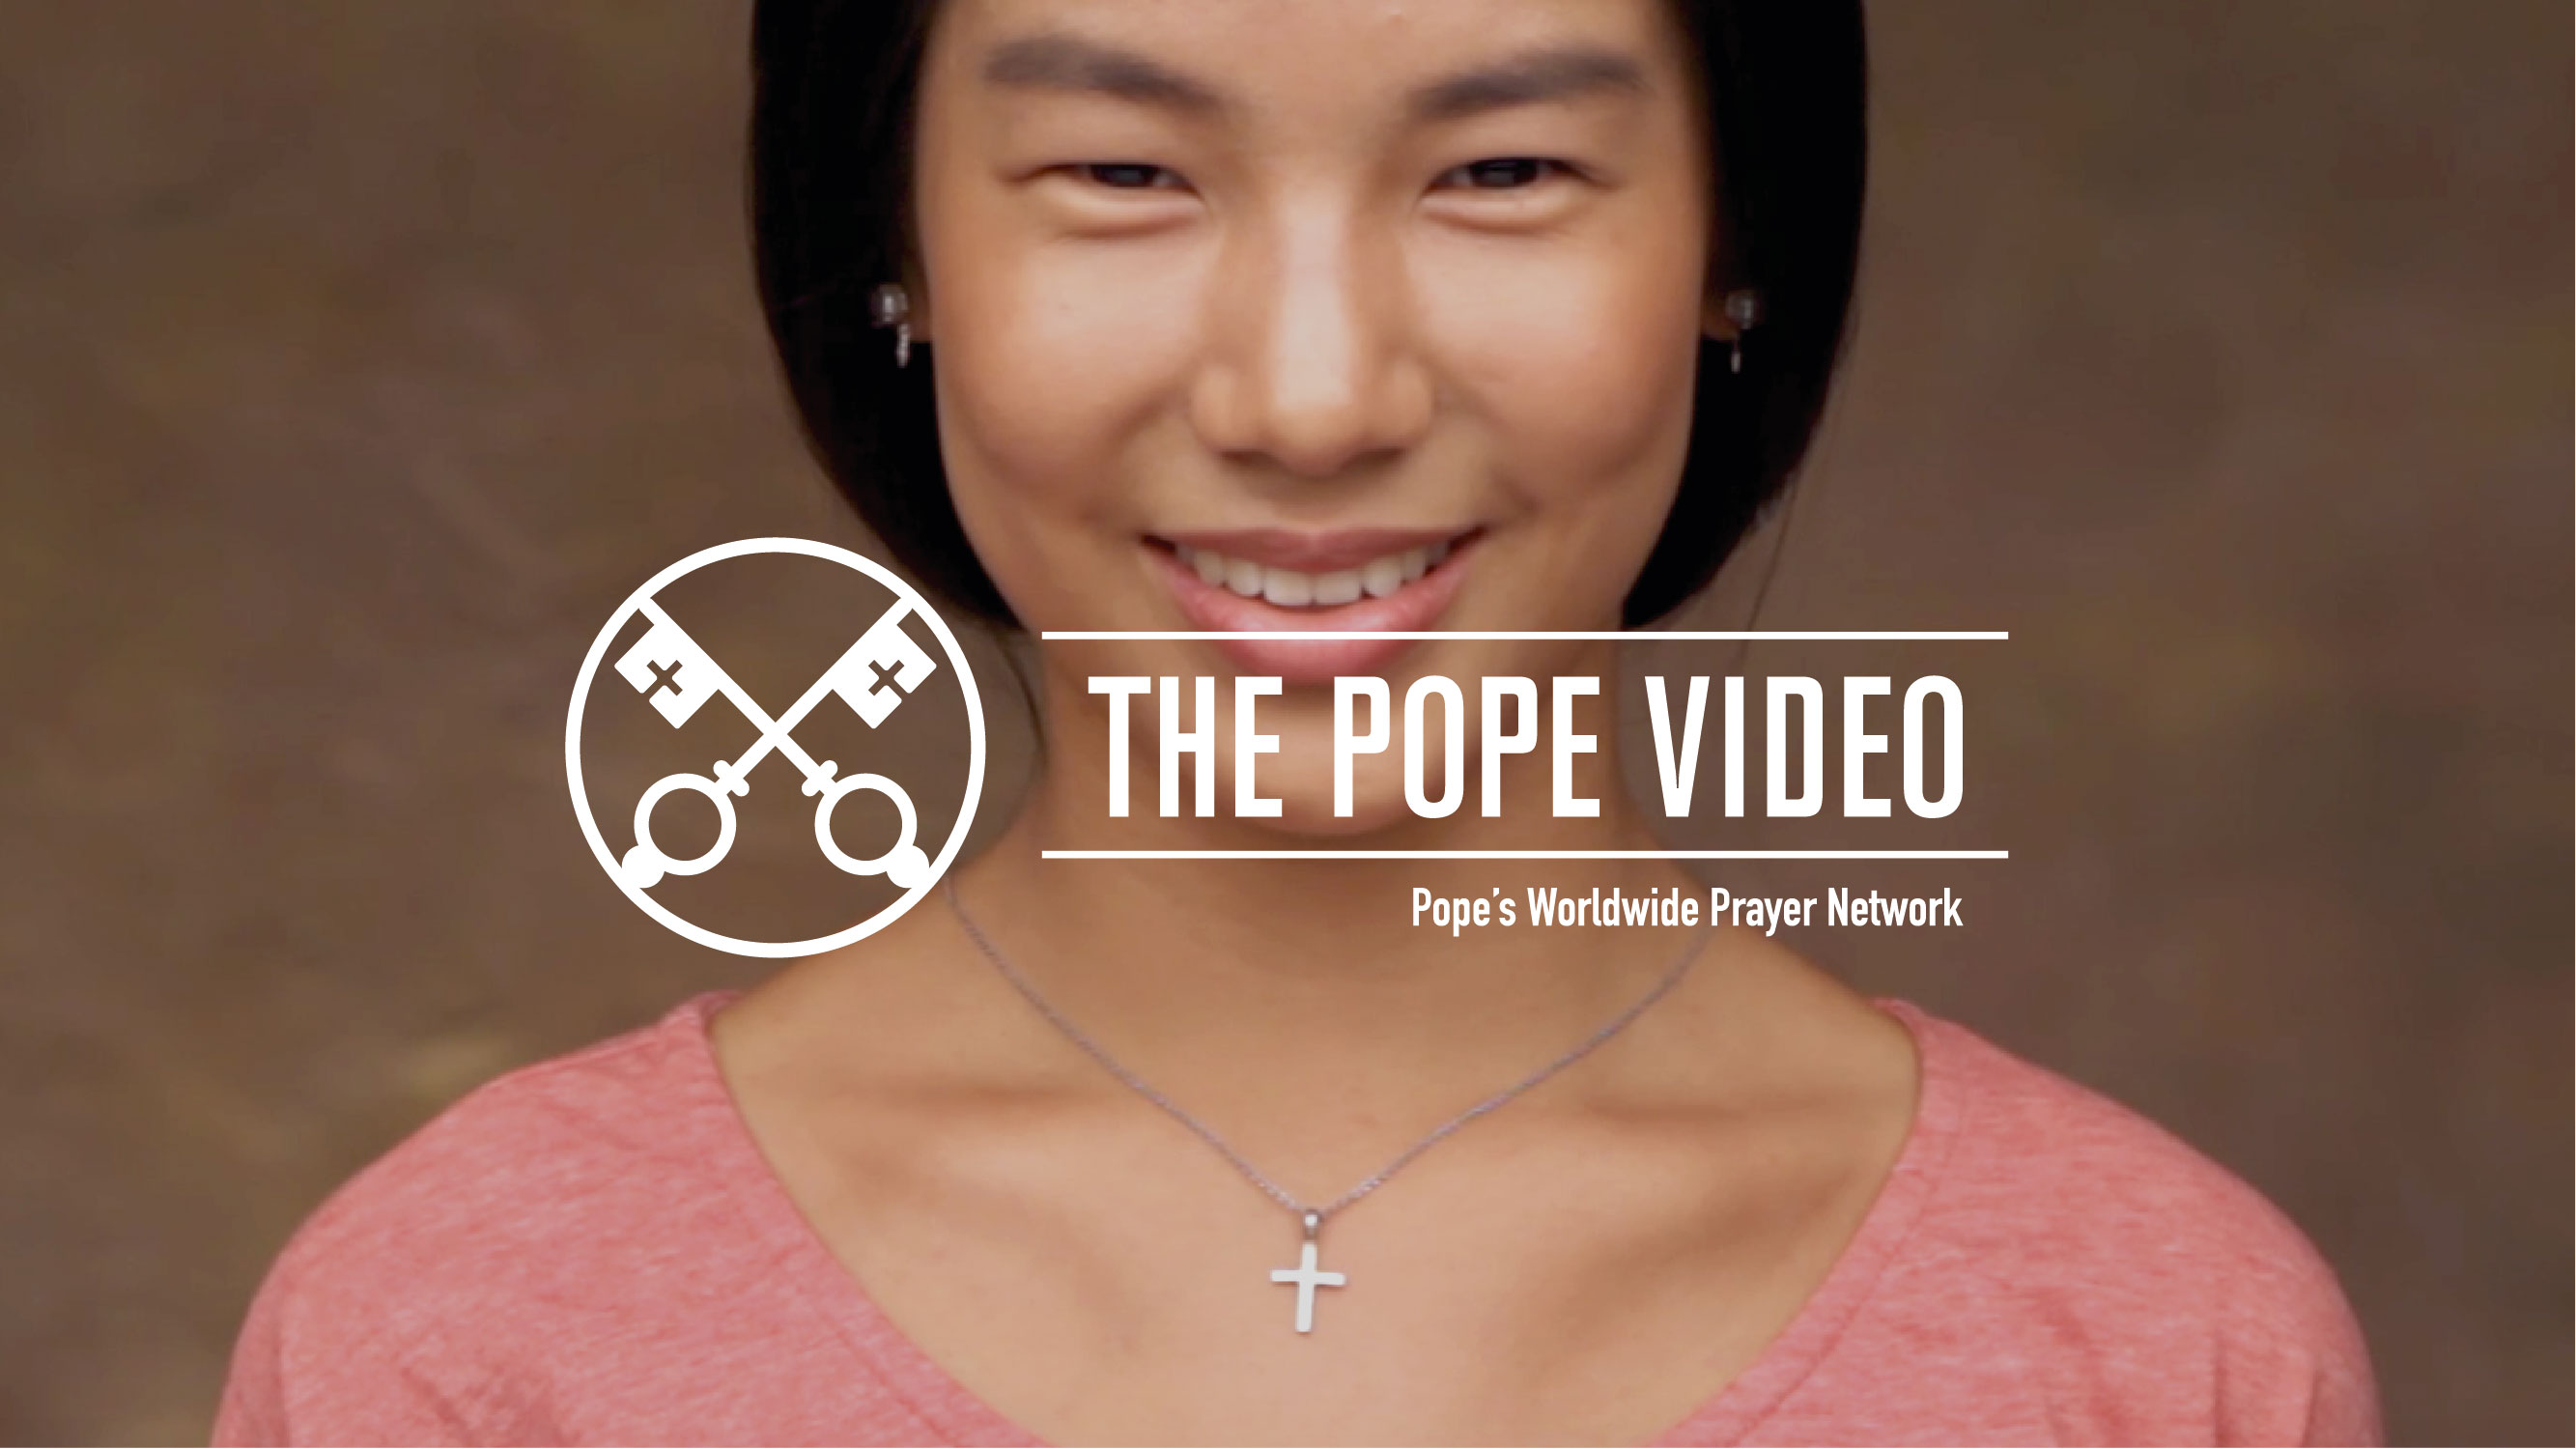 The Pope Video November 2017 (Official Image)